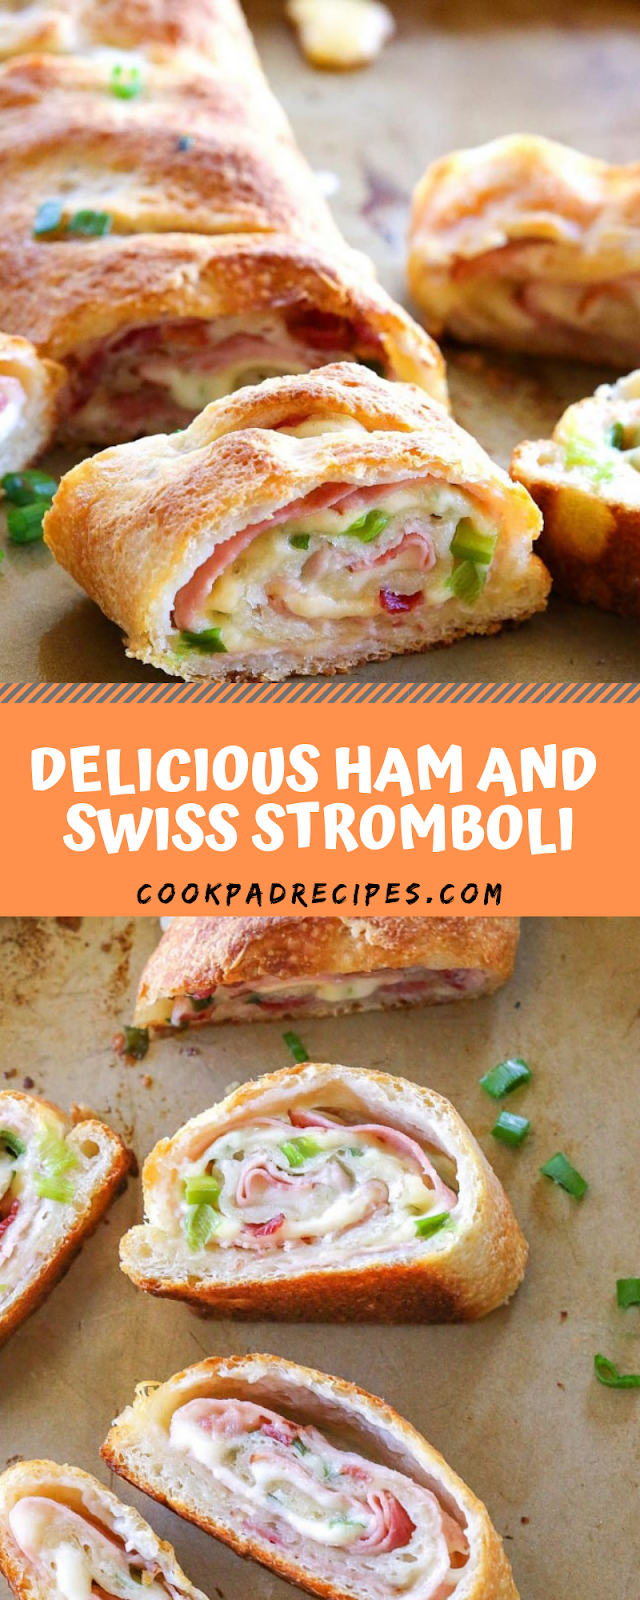 DELICIOUS HAM AND SWISS STROMBOLI